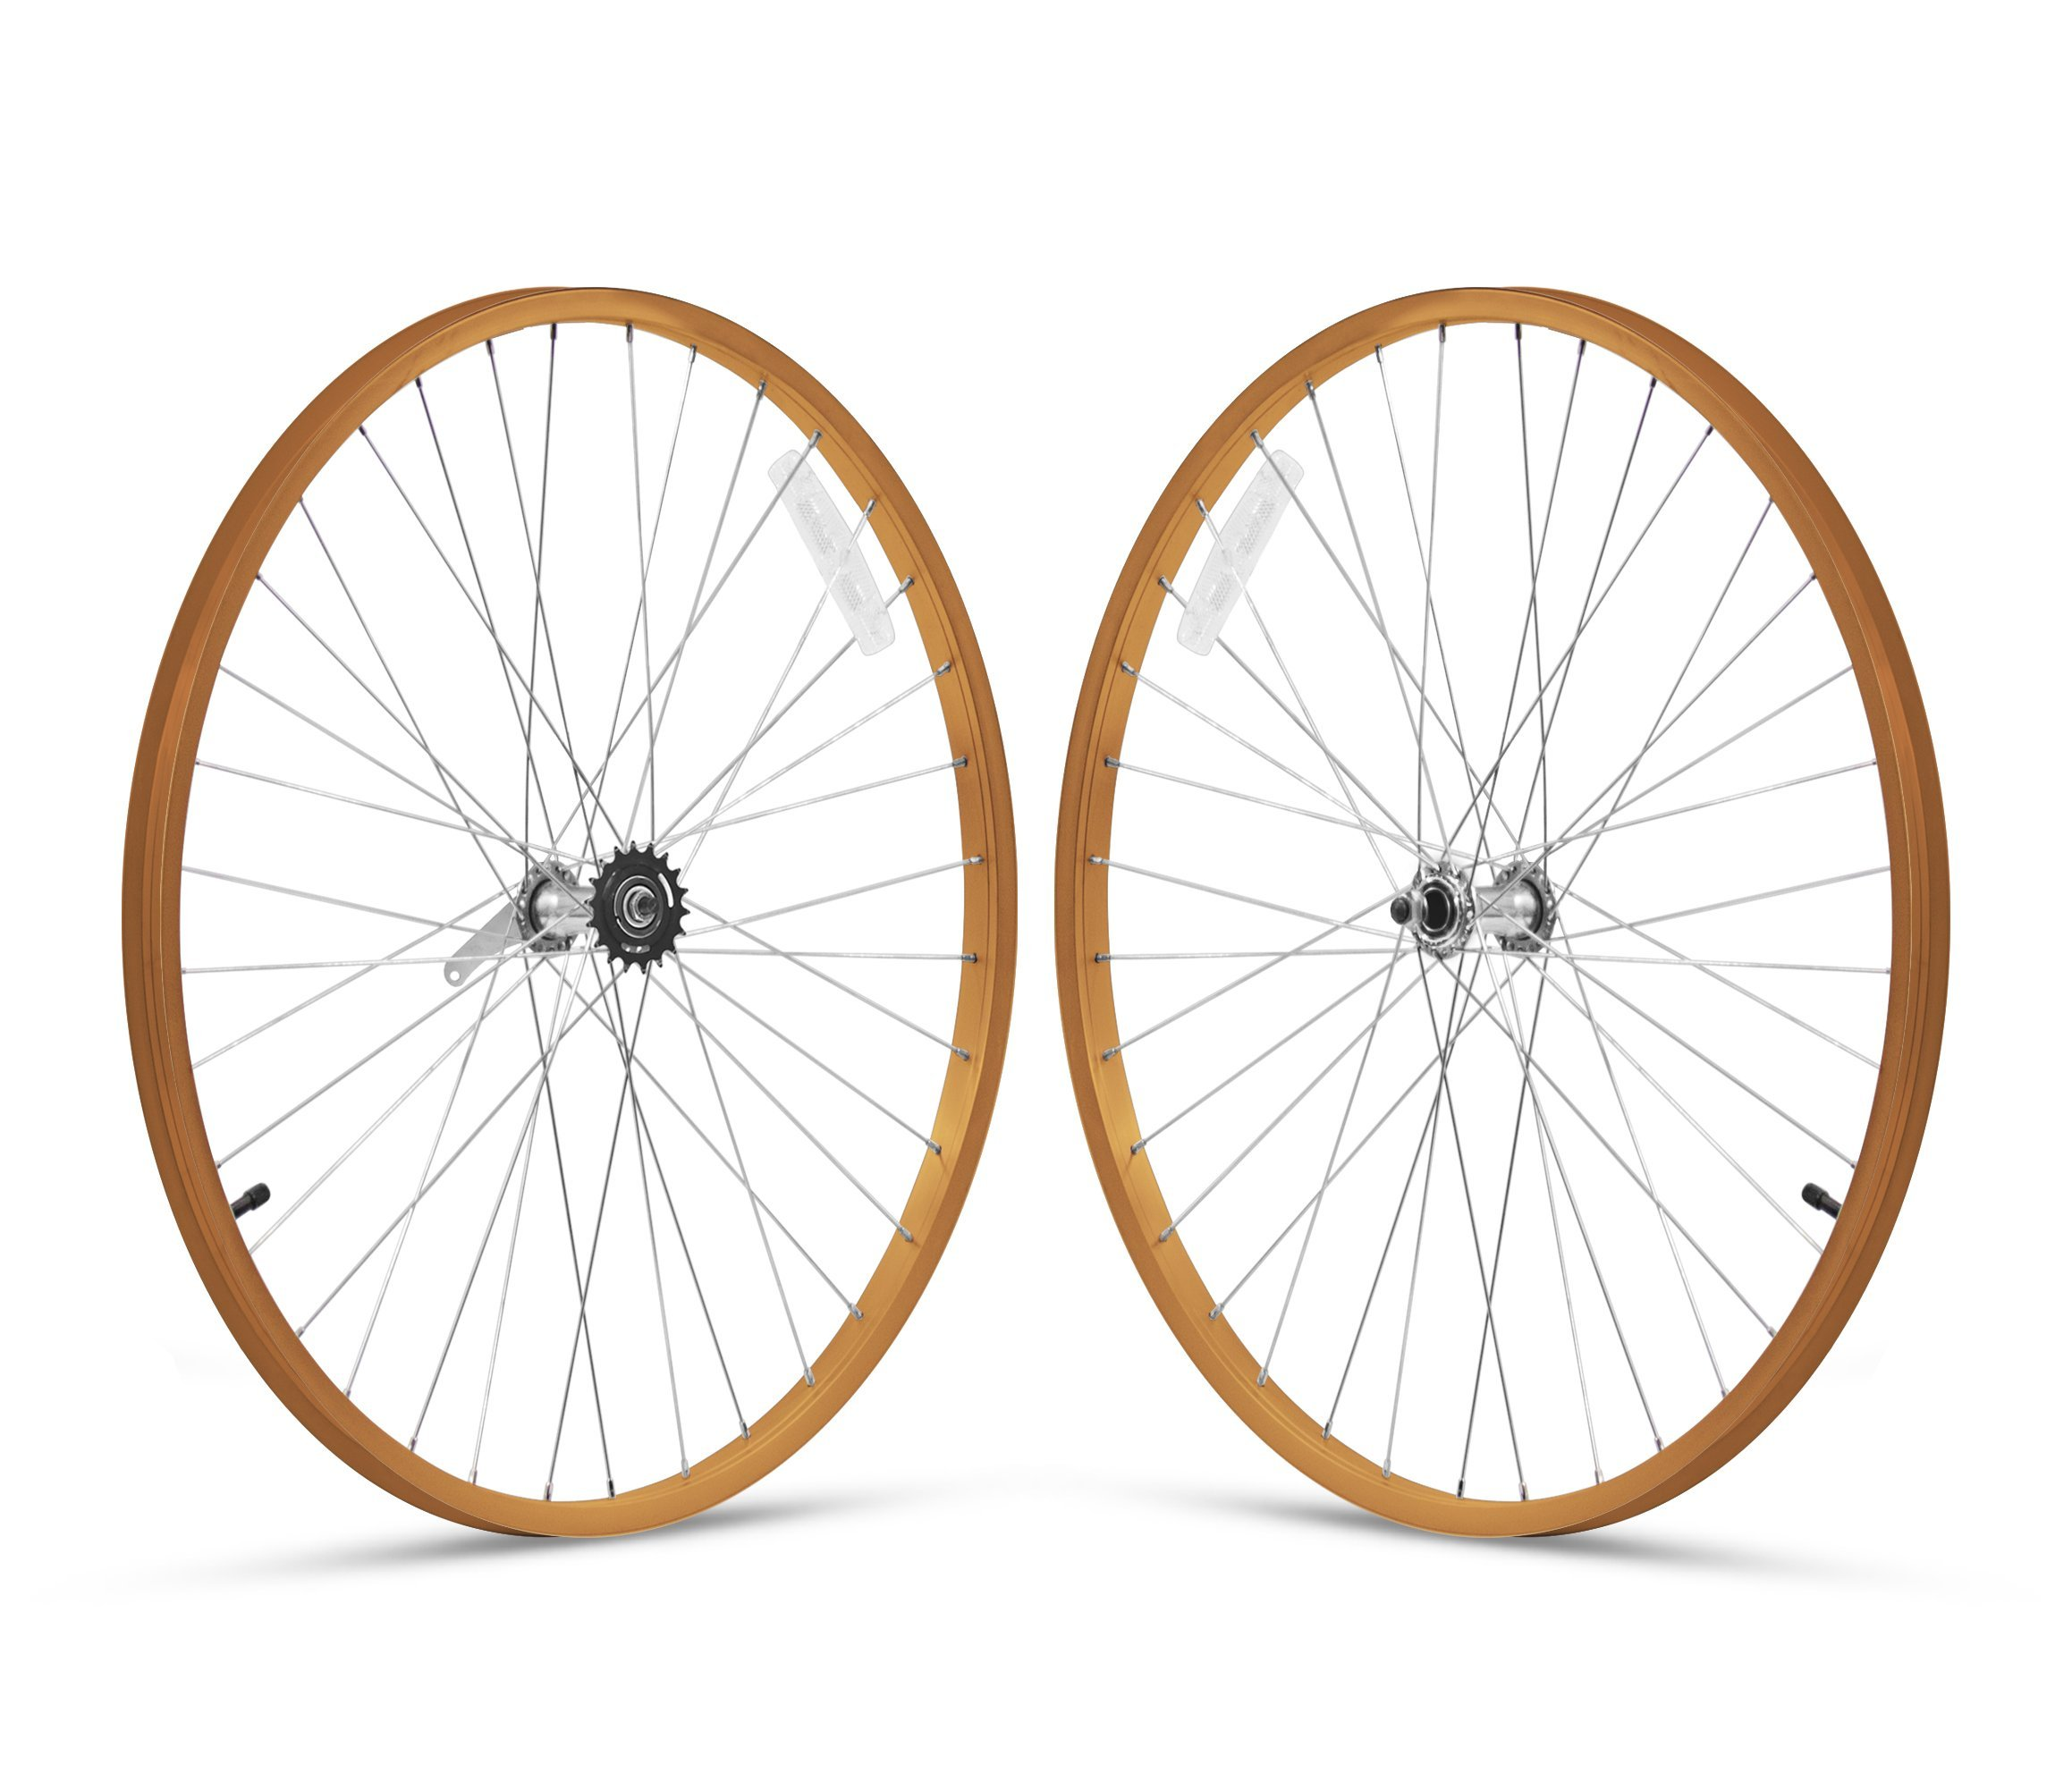 Firmstrong 1-Speed Beach Cruiser Bicycle Wheelset, Front/Rear, Orange, 26''